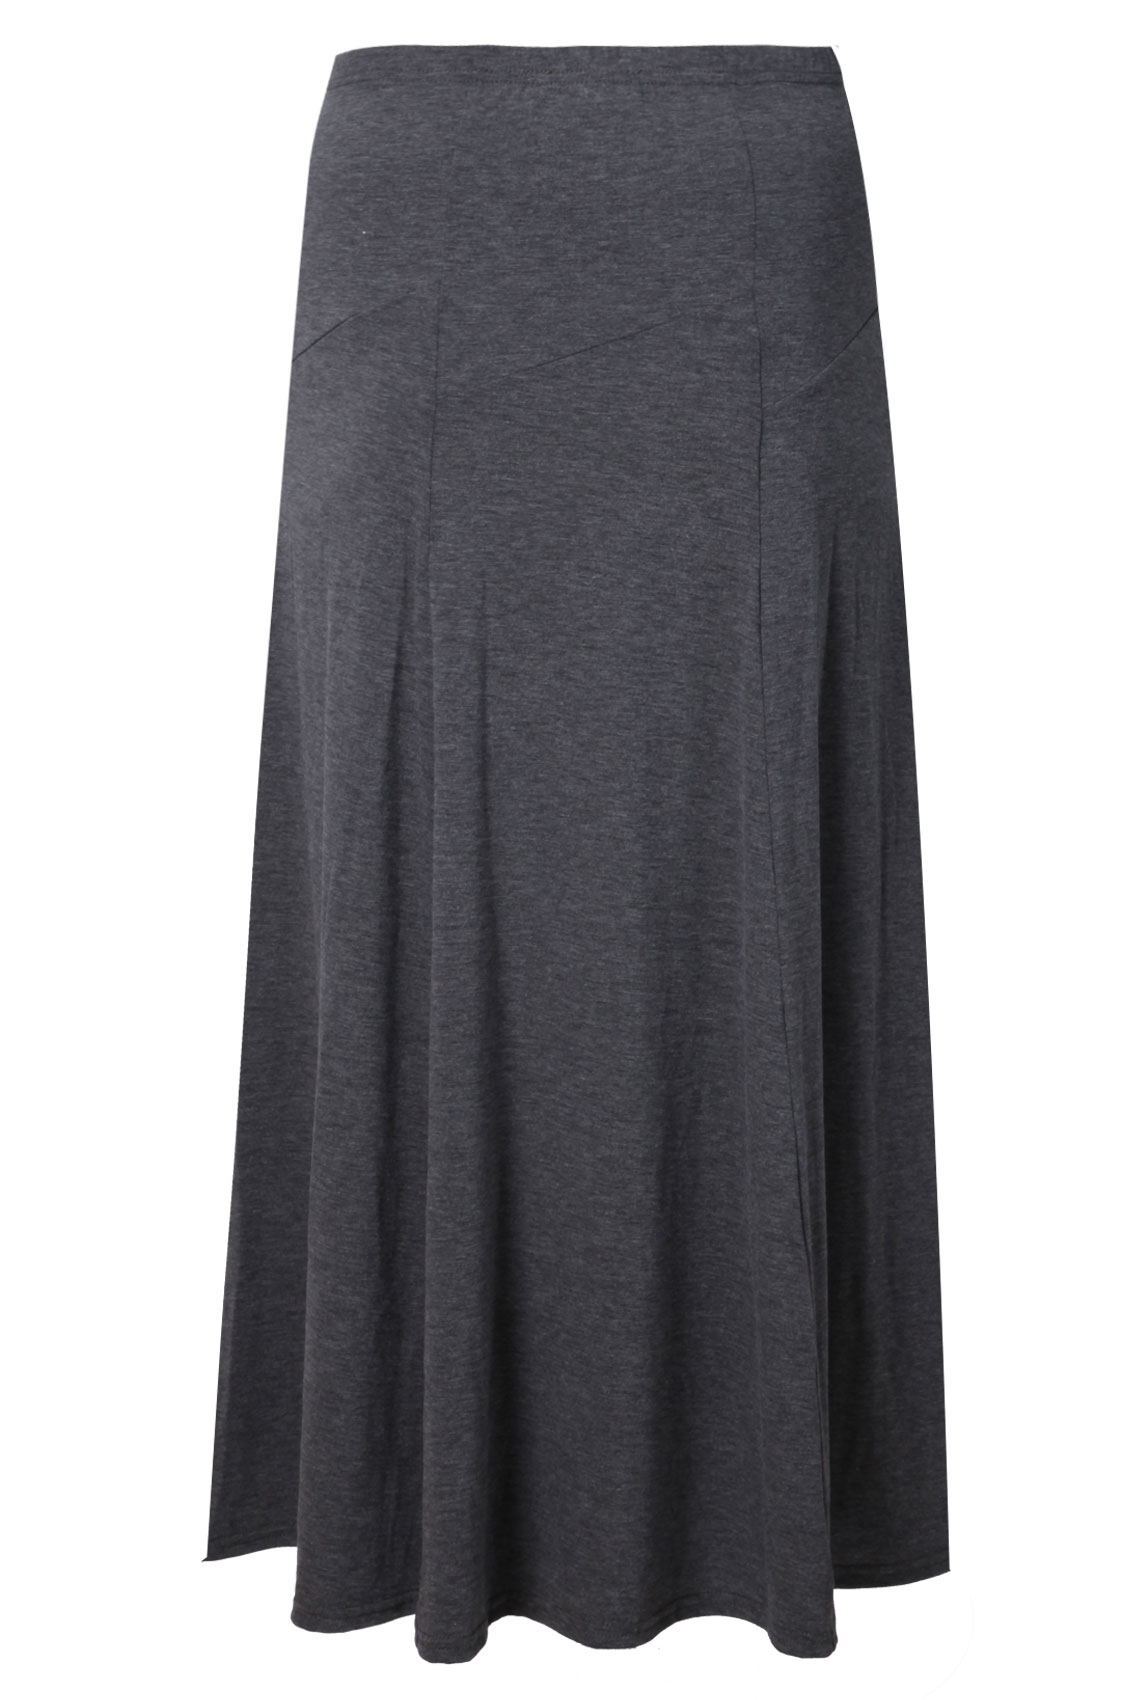 grey panelled jersey maxi skirt plus size 16 18 20 22